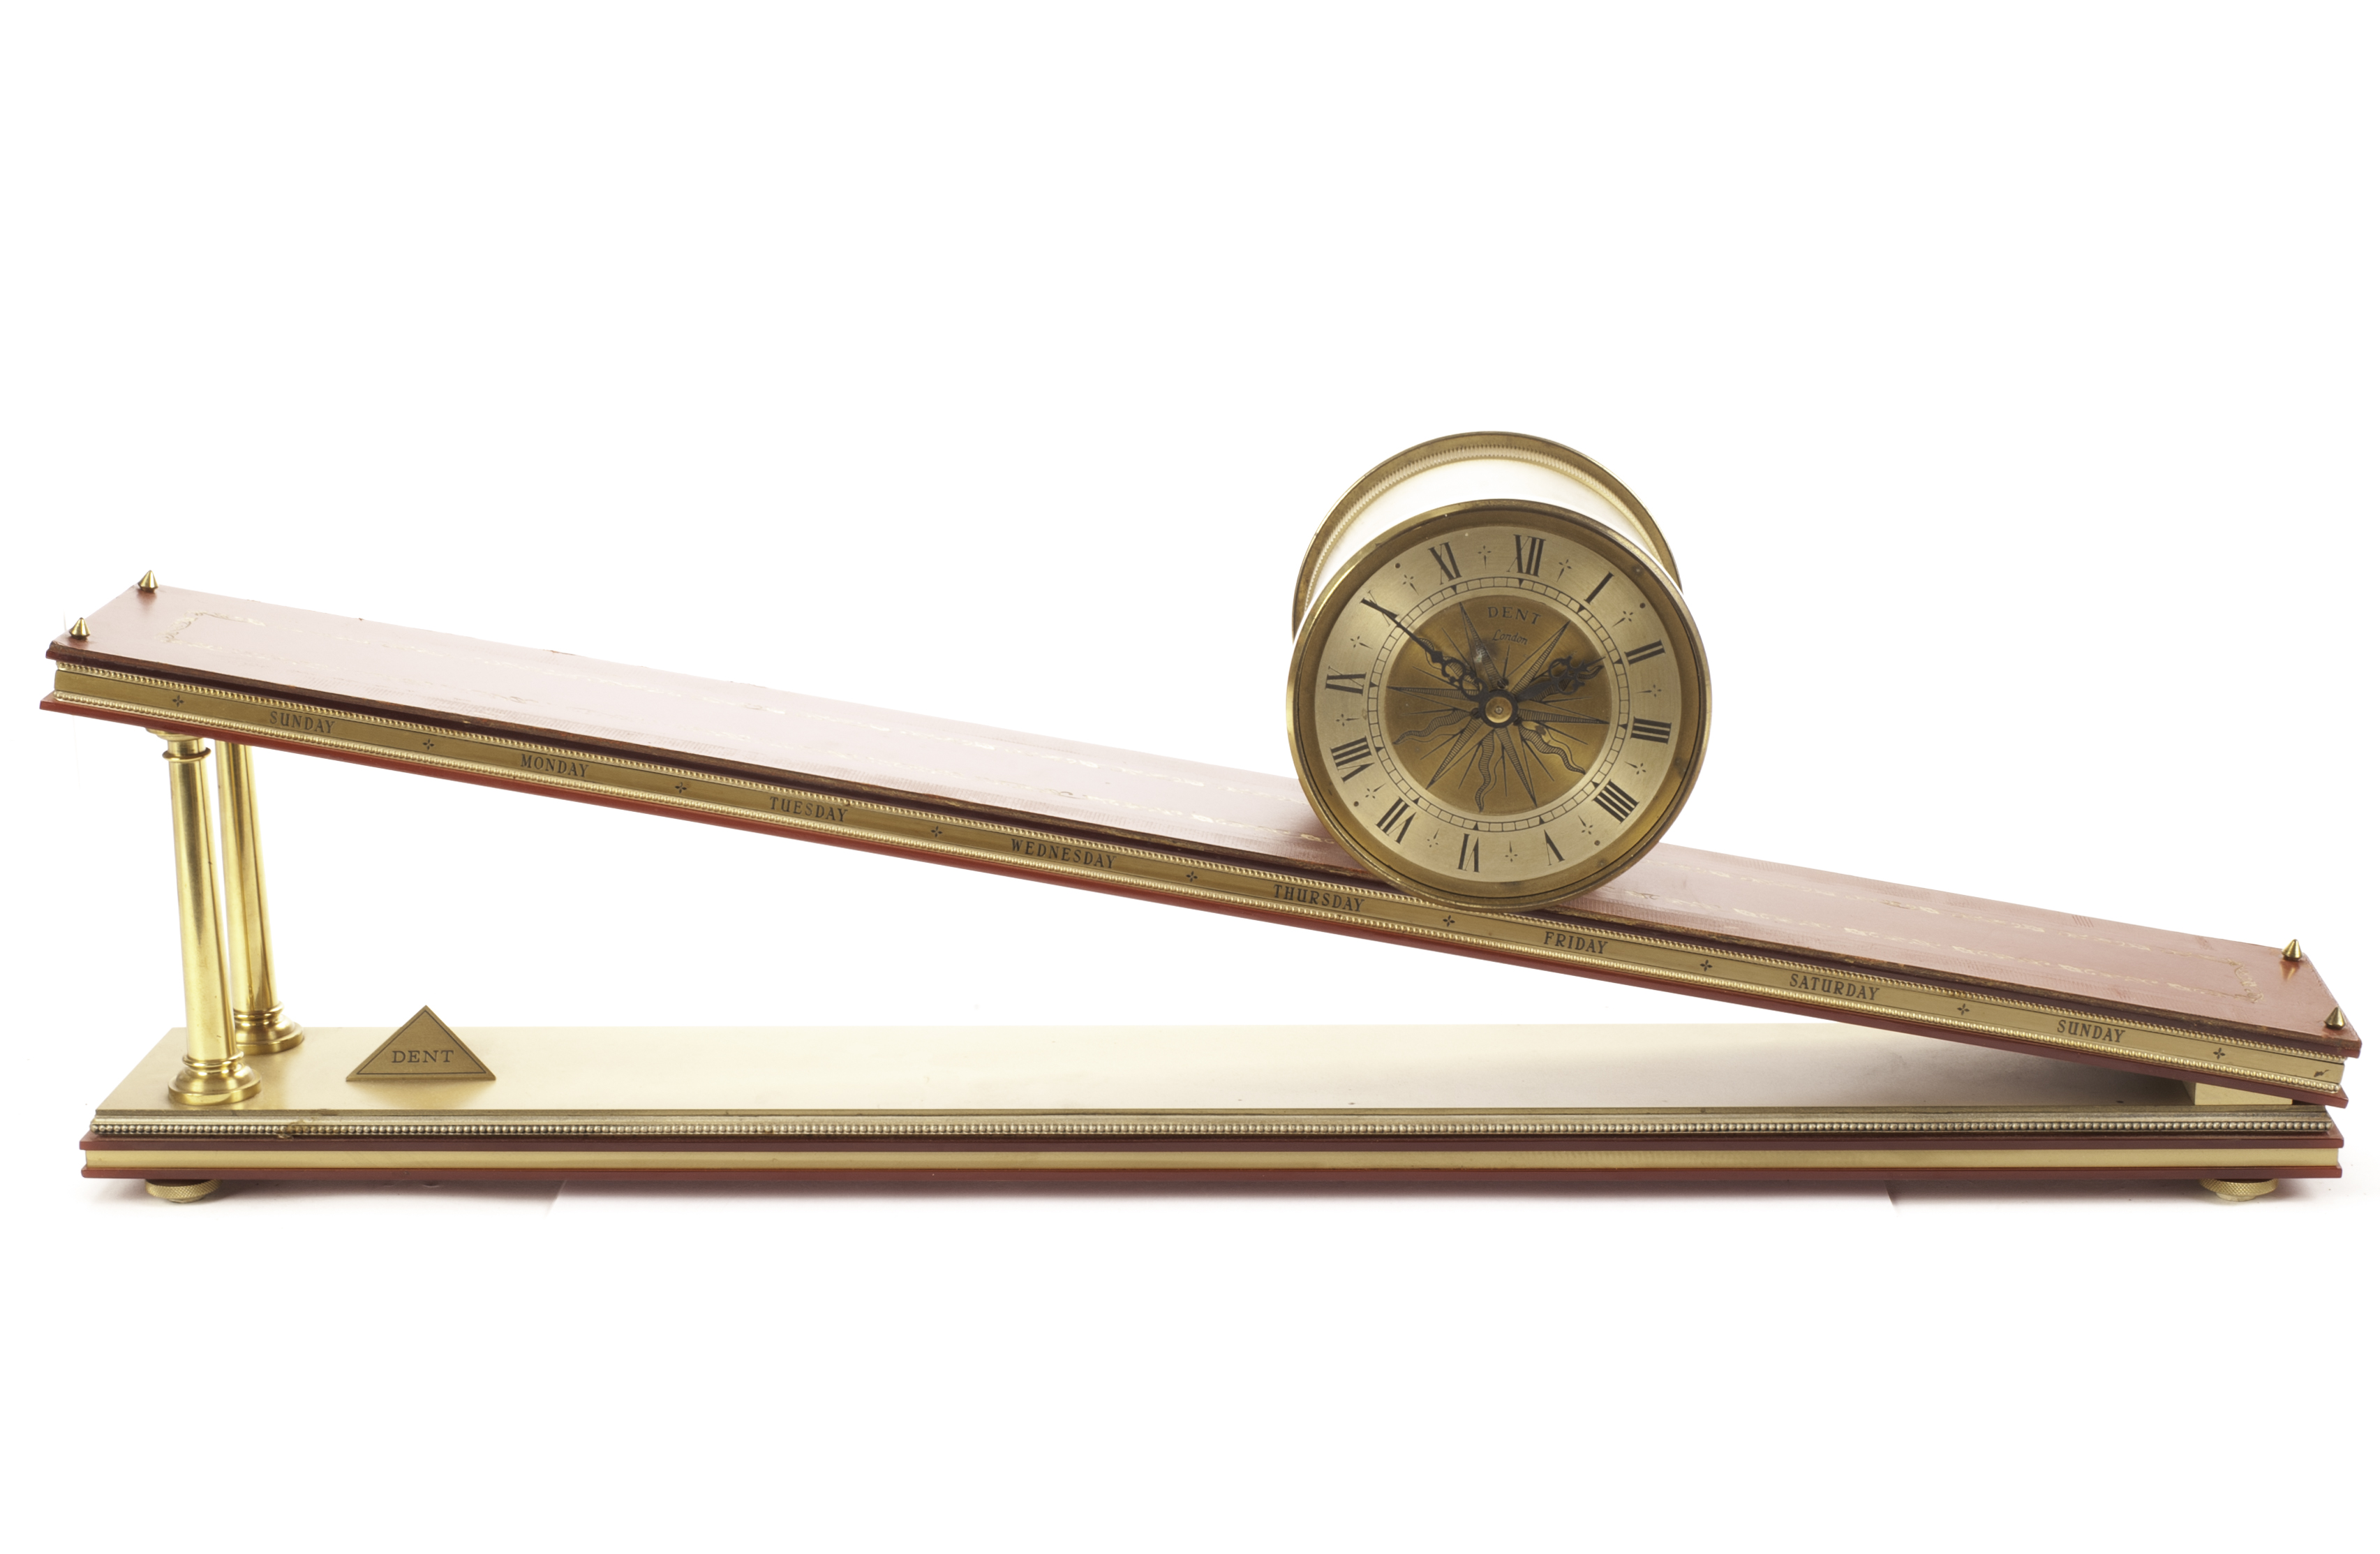 Lot 425 - A Dent of London incline gravity clock, the compass engraved brass barrel with roman numerals, wound